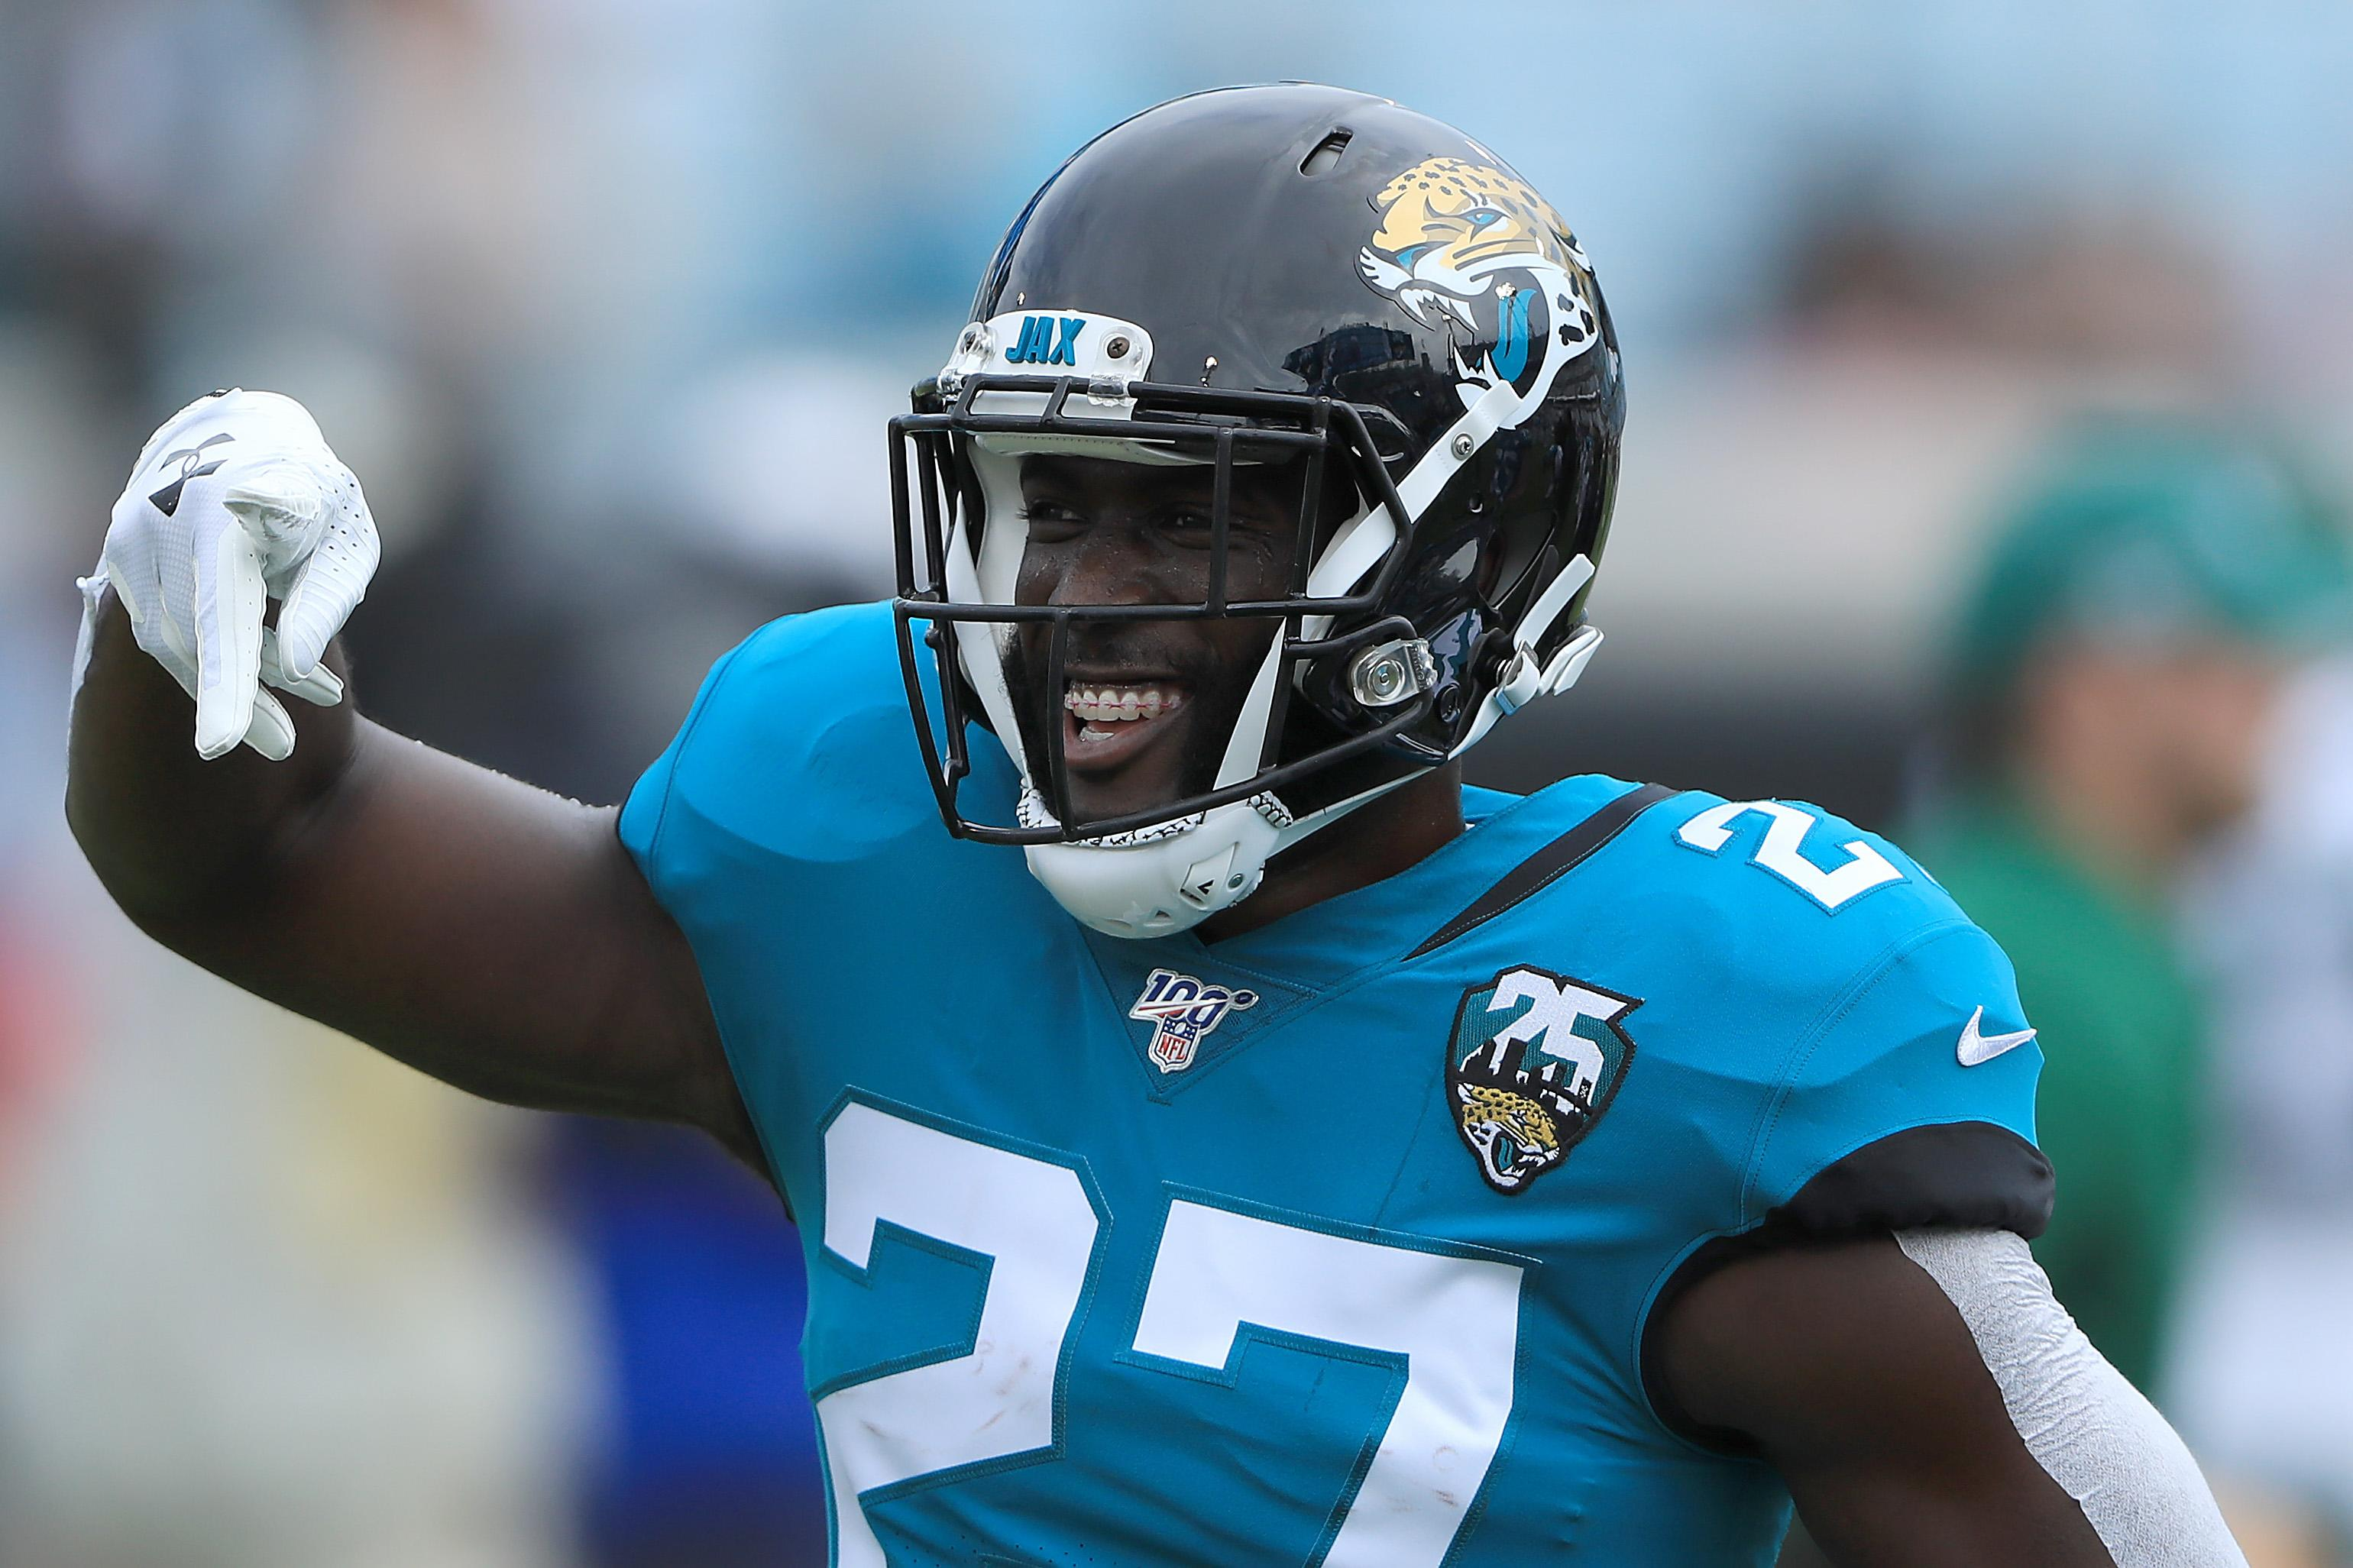 Week 11 Yahoo DFS Running Back Picks: Save with value plays to spend elsewhere